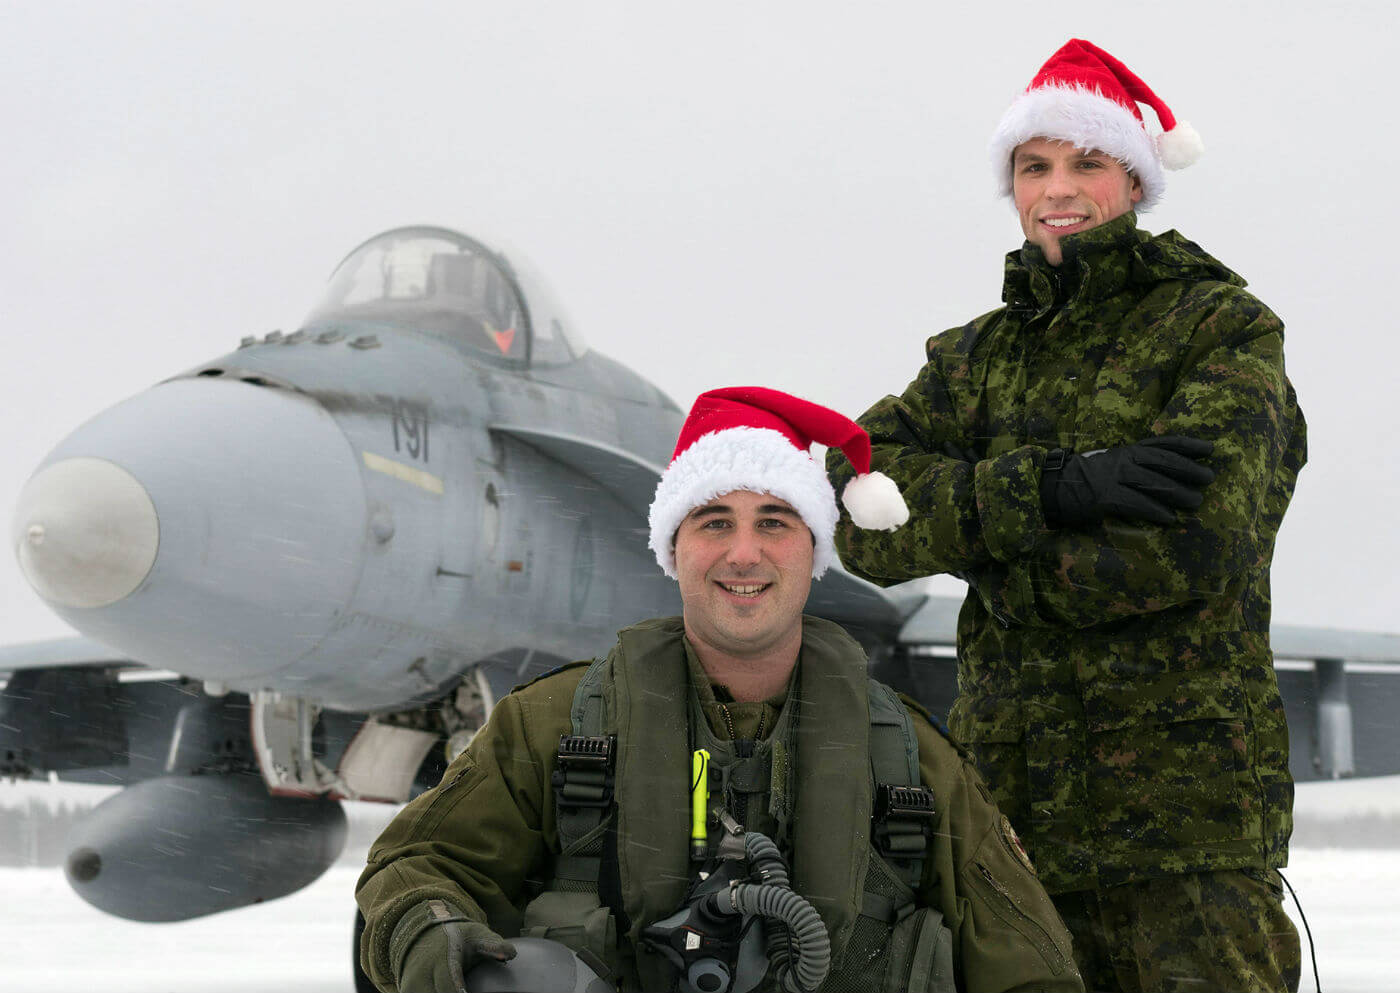 Capt Frédéric Létourneau (kneeling) from 425 Tactical Fighter Squadron at 3 Wing Bagotville, Que., is one of the pilots who will escort Santa over North America in 2016. Cpl Steeven Cantin is his crew chief. Cpl Jean-Roch Chabot Photo